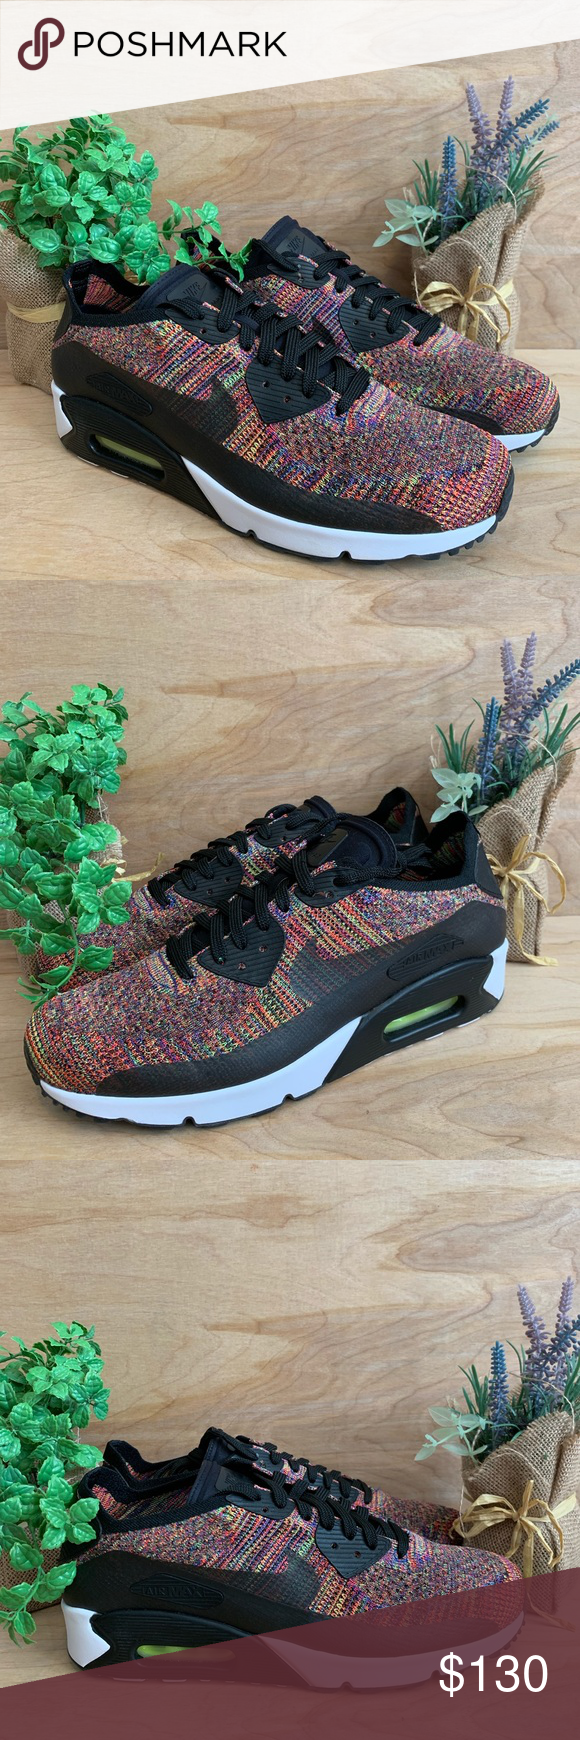 648636d6a2b6 Nike Air Max 90 Ultra 2.0 Flyknit Black Multicolor Size 10 NEW (NEVER WORN) Nike  Air Max 90 Ultra 2.0 Flyknit Black Multicolor Mens Does include the ...